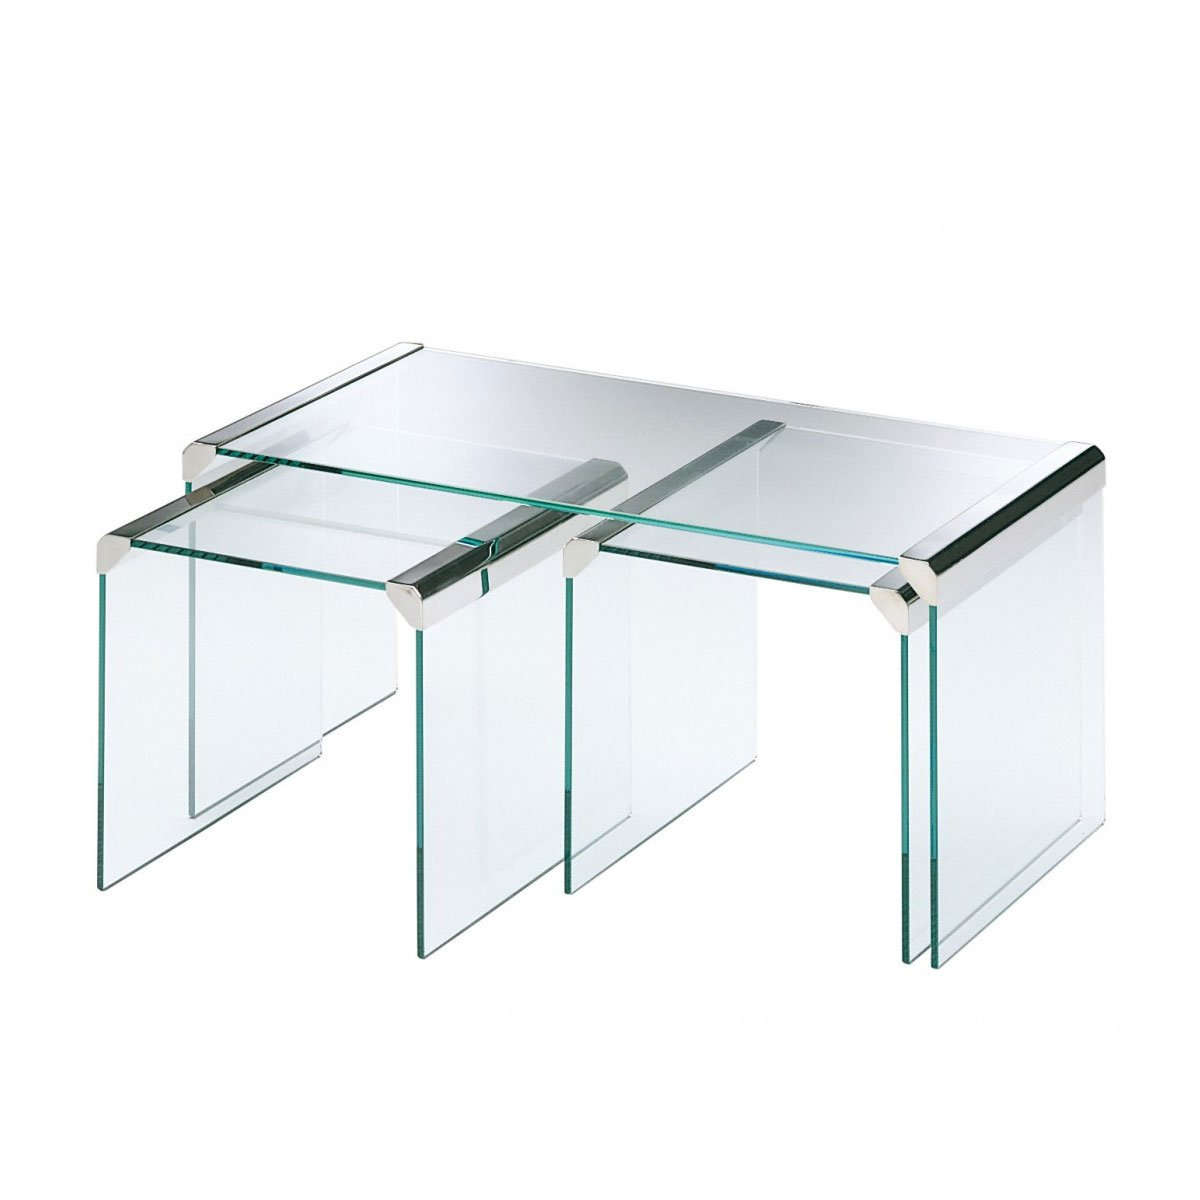 T35r nesting glass and metal coffee table by gallotti radice klarity glass furniture Metal and glass coffee table